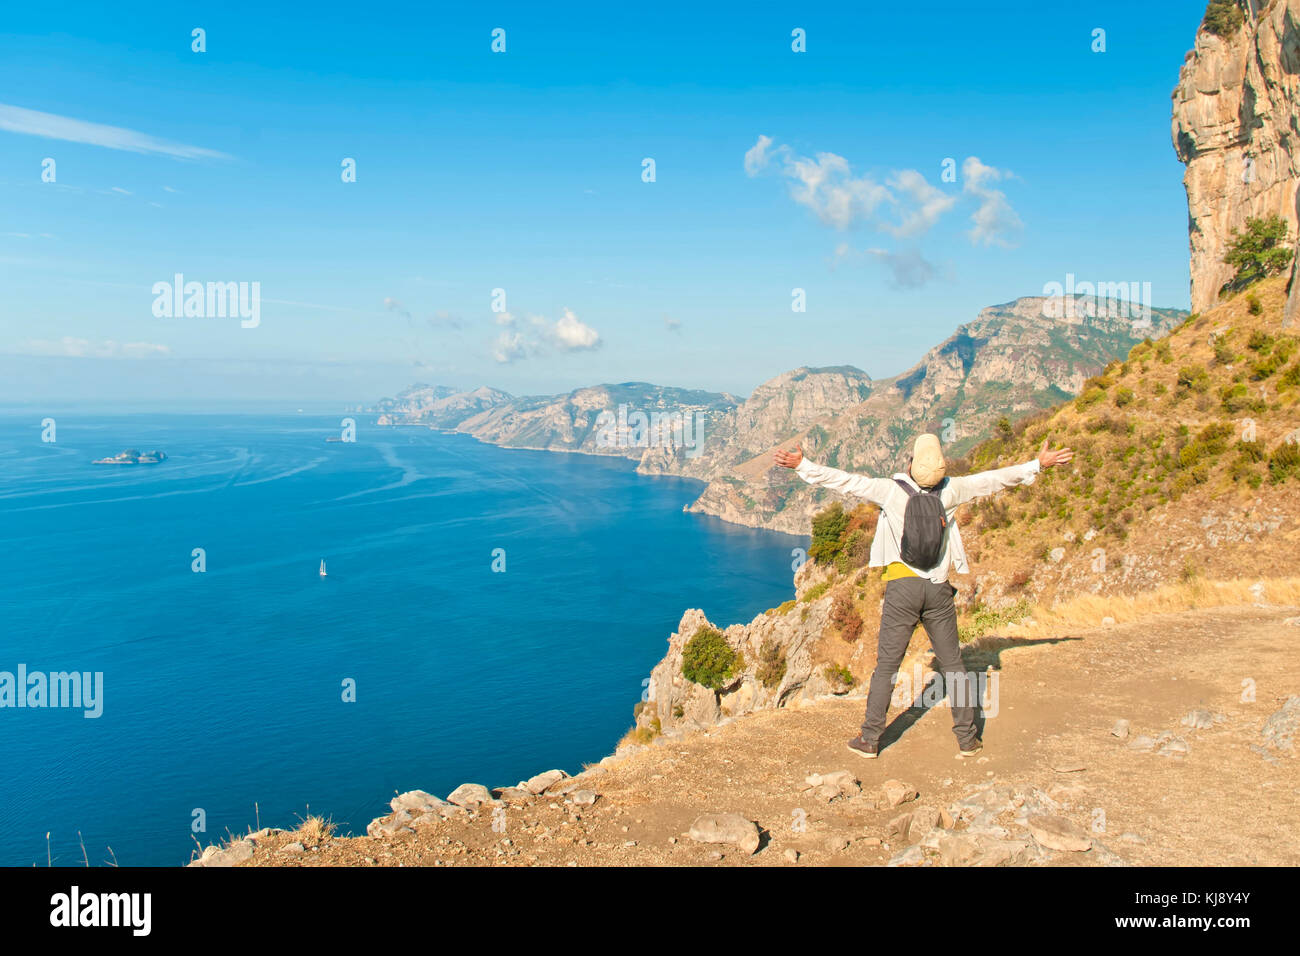 young male tourist in white shirt and cap standing at cliff edge with his arms open looking at sea and mountains - Stock Image